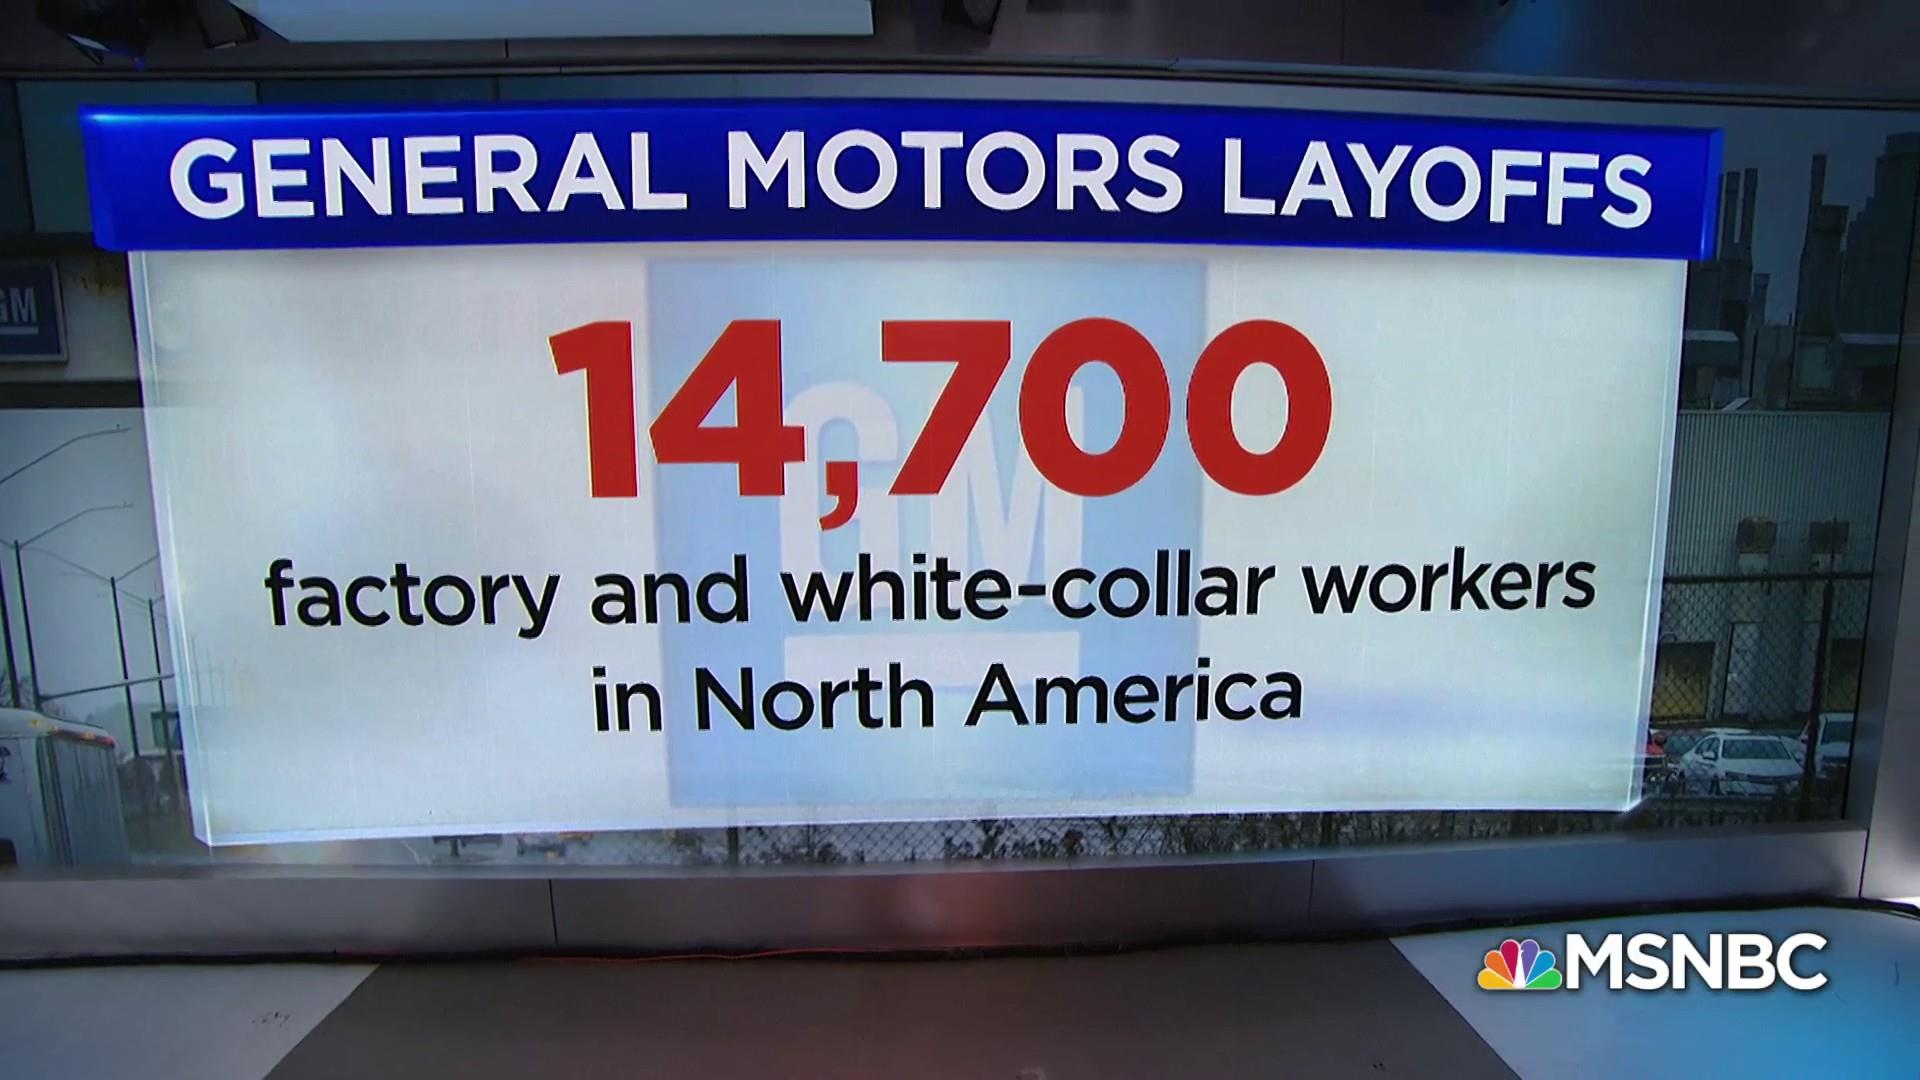 General Motors announces sweeping layoffs for North American workers